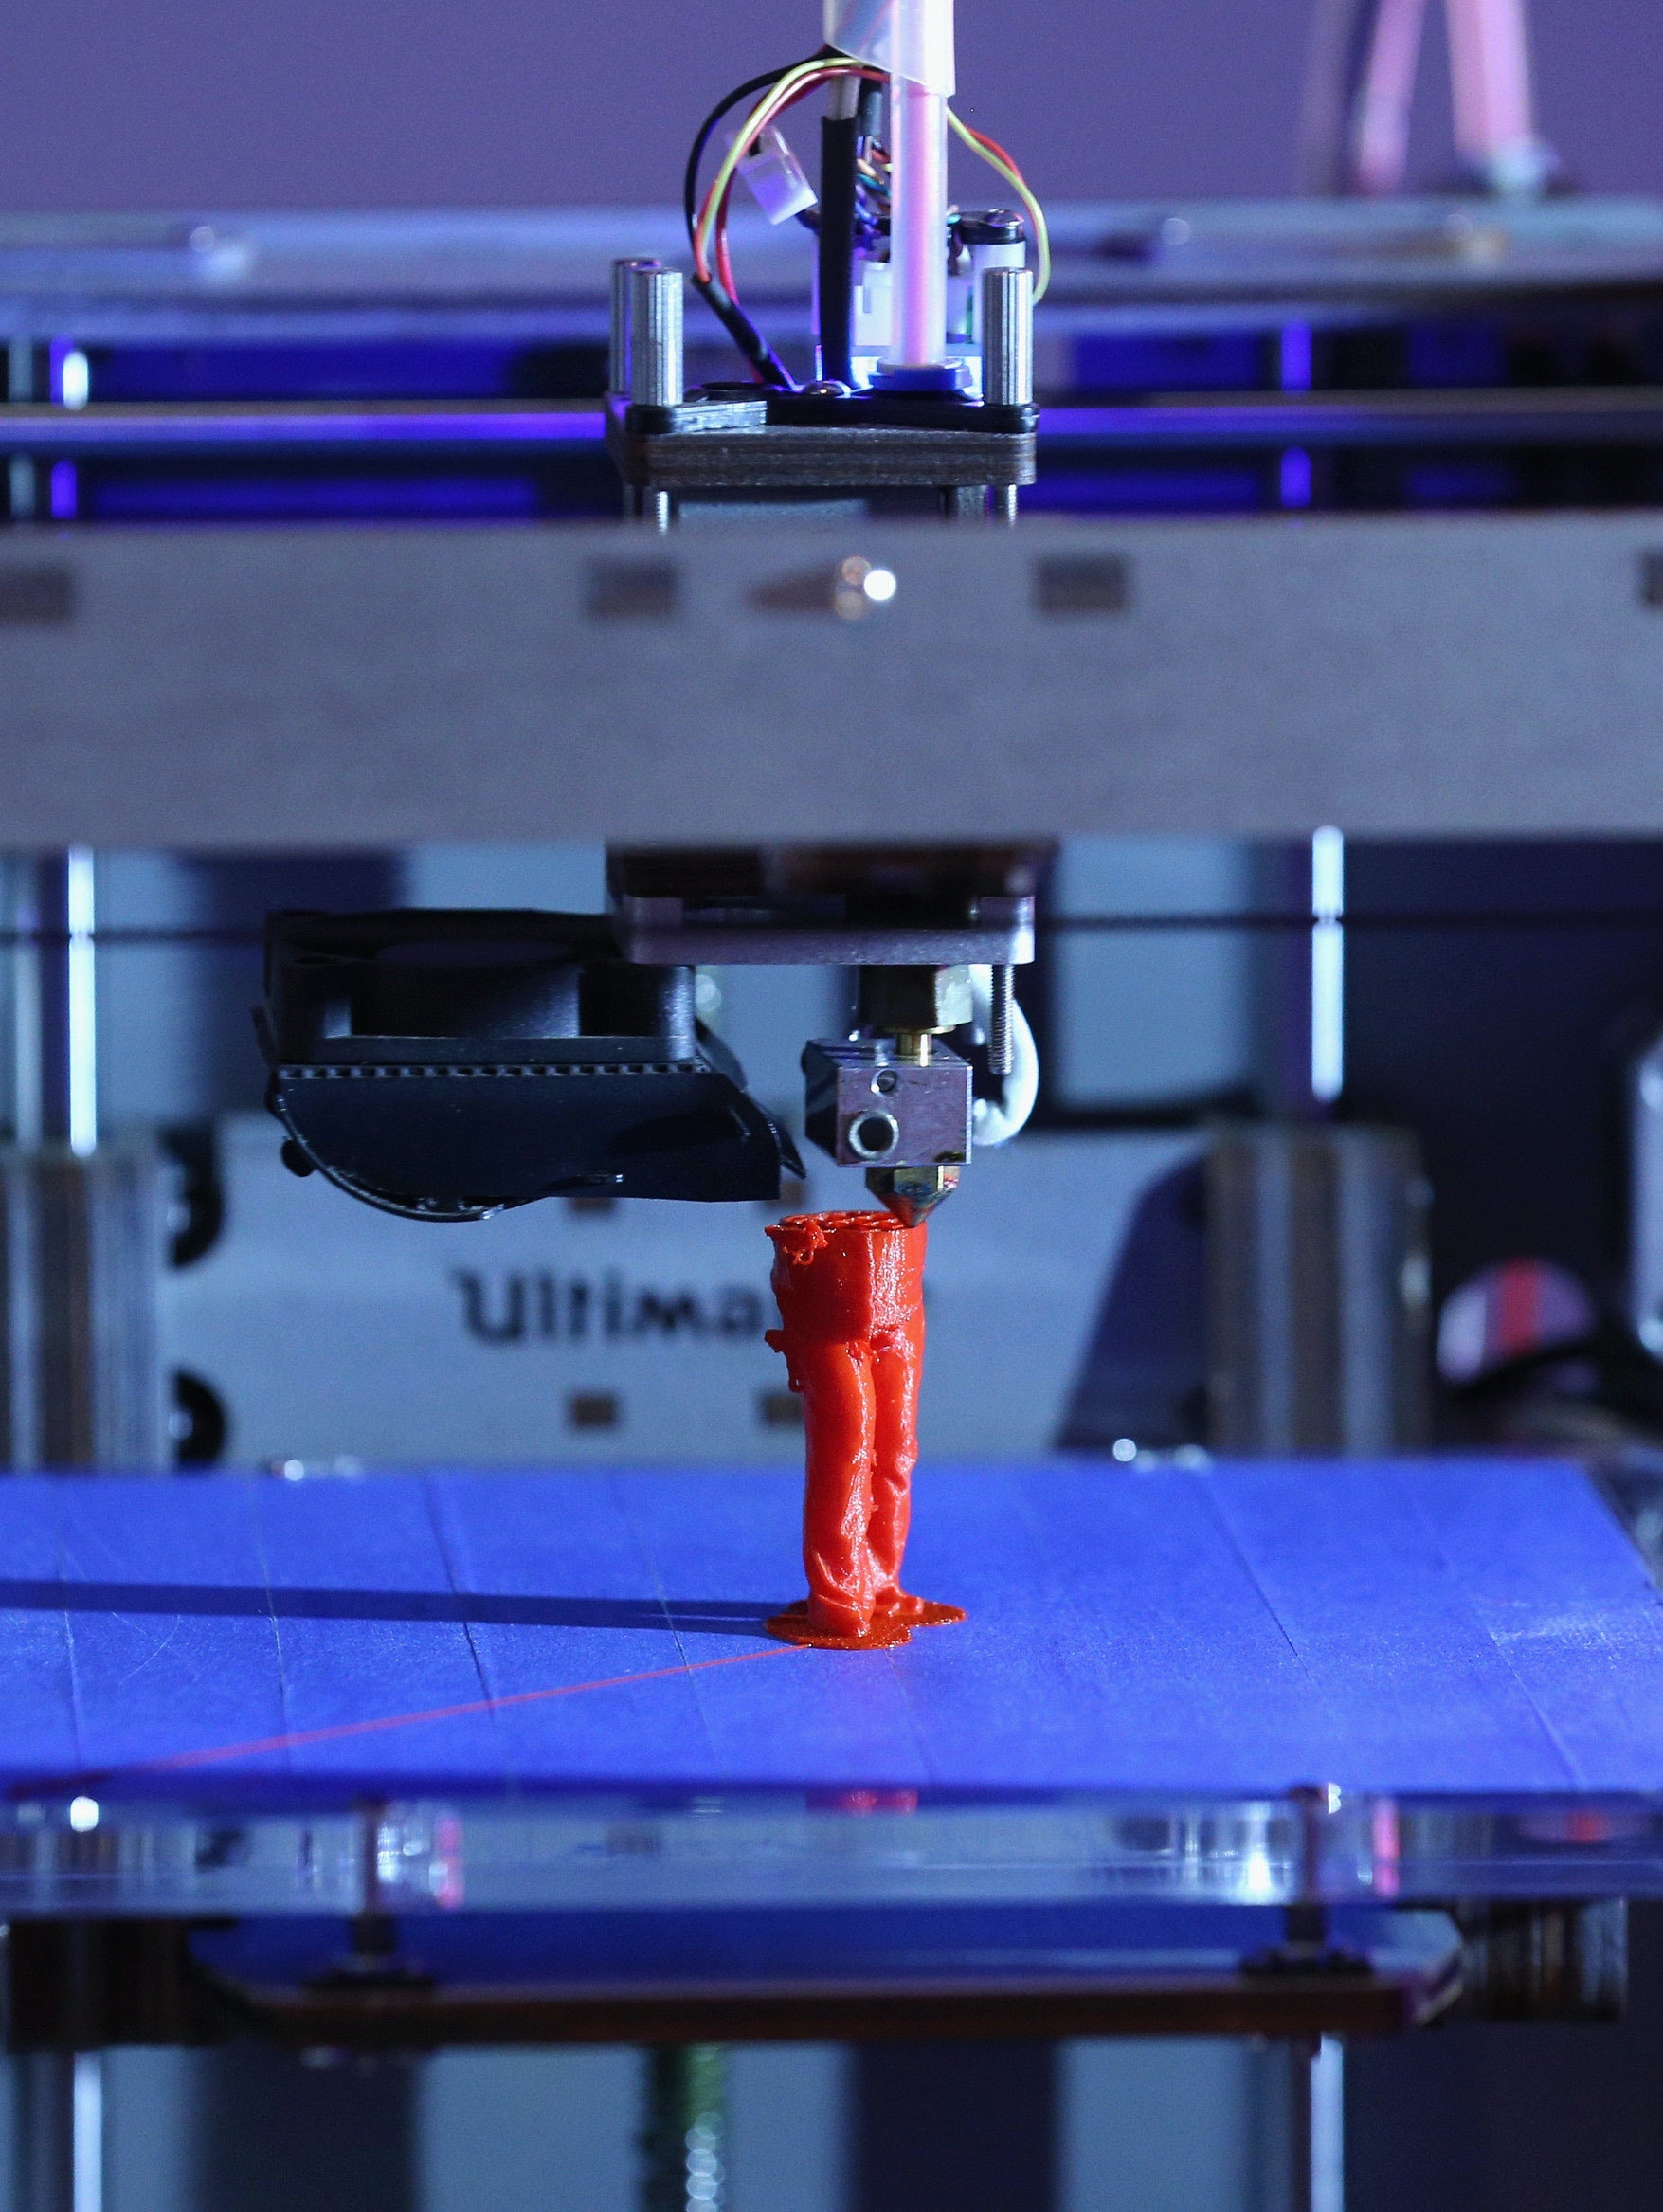 LONDON, ENGLAND - OCTOBER 08:  A 3D printer constructs a model human figure in the exhibition '3D: printing the future' in the Science Museum on October 8, 2013 in London, England. The exhibition, which opens to the public tomorrow, features over 600 3D printed objects ranging from: replacement organs, artworks, aircraft parts and a handgun.  (Photo by Oli Scarff/Getty Images)